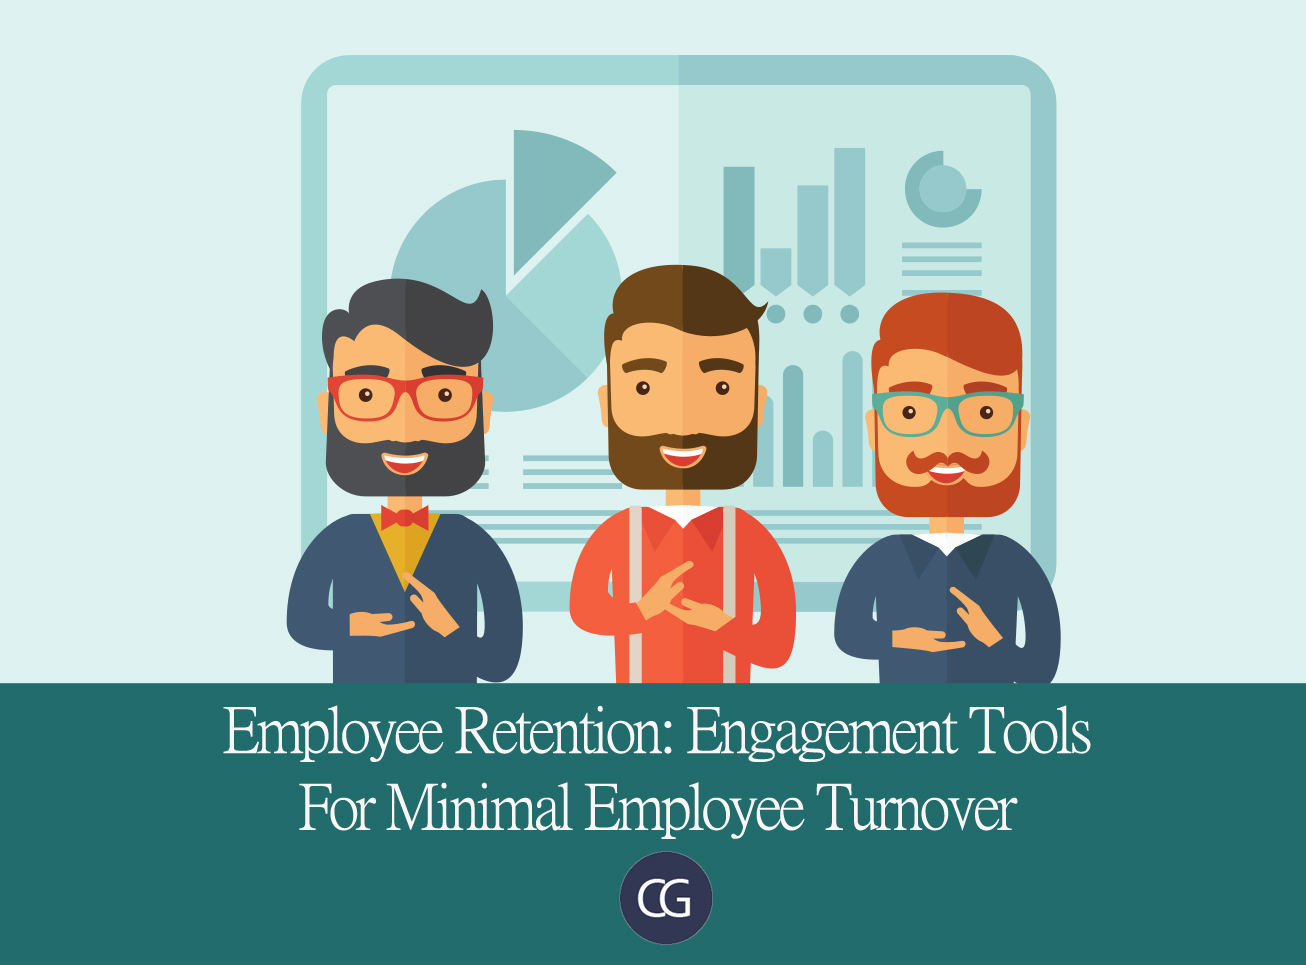 Employee Retention: Engagement Tools For Minimal Employee Turnover